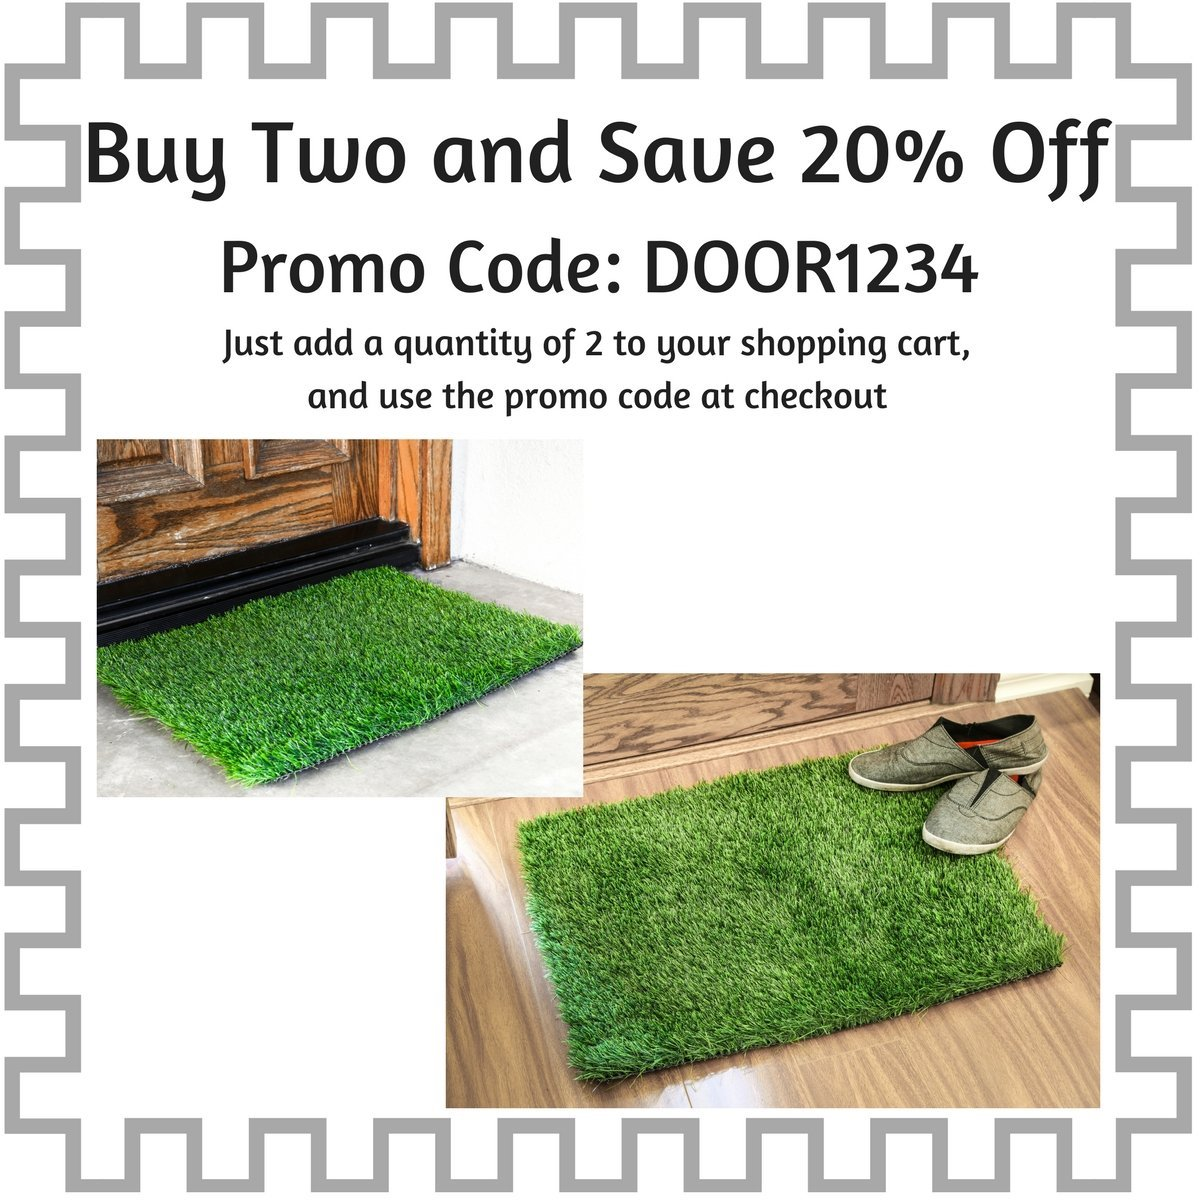 Floor mats promo code - Amazon Com Artificial Grass Doormat 24x18 Inches Welcome Mat For Entrance Way Outdoors And Indoors Patio Lawn Garden